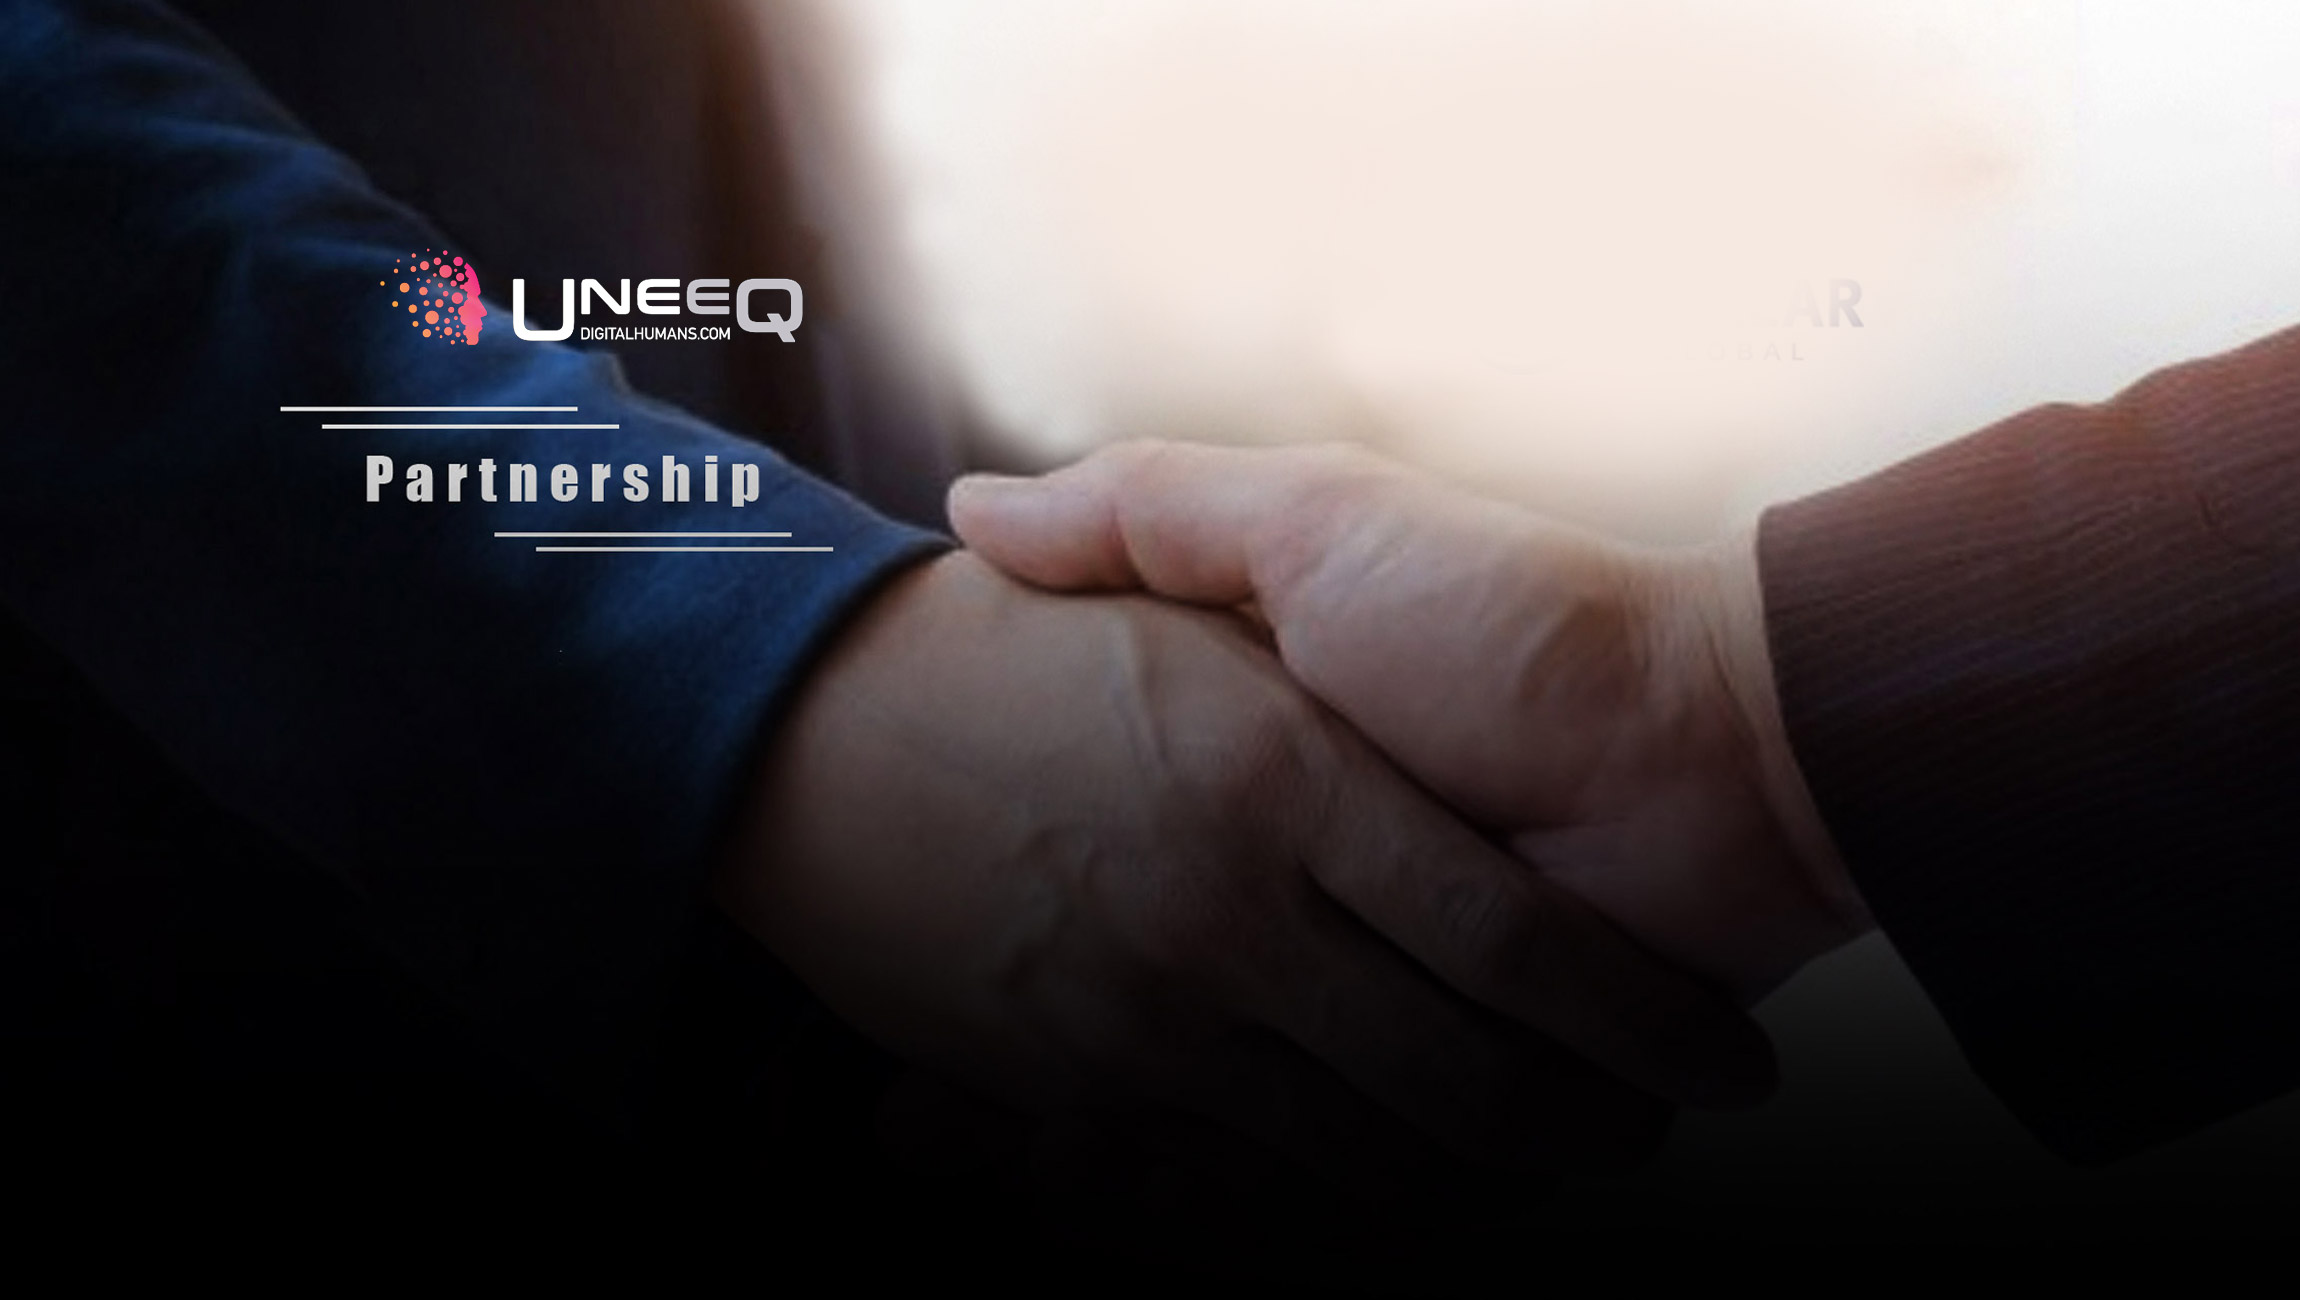 IBM, Amazon, Deloitte, DXC, and Accenture Partnering with UneeQ to Drive the Future of Conversational AI Adoption